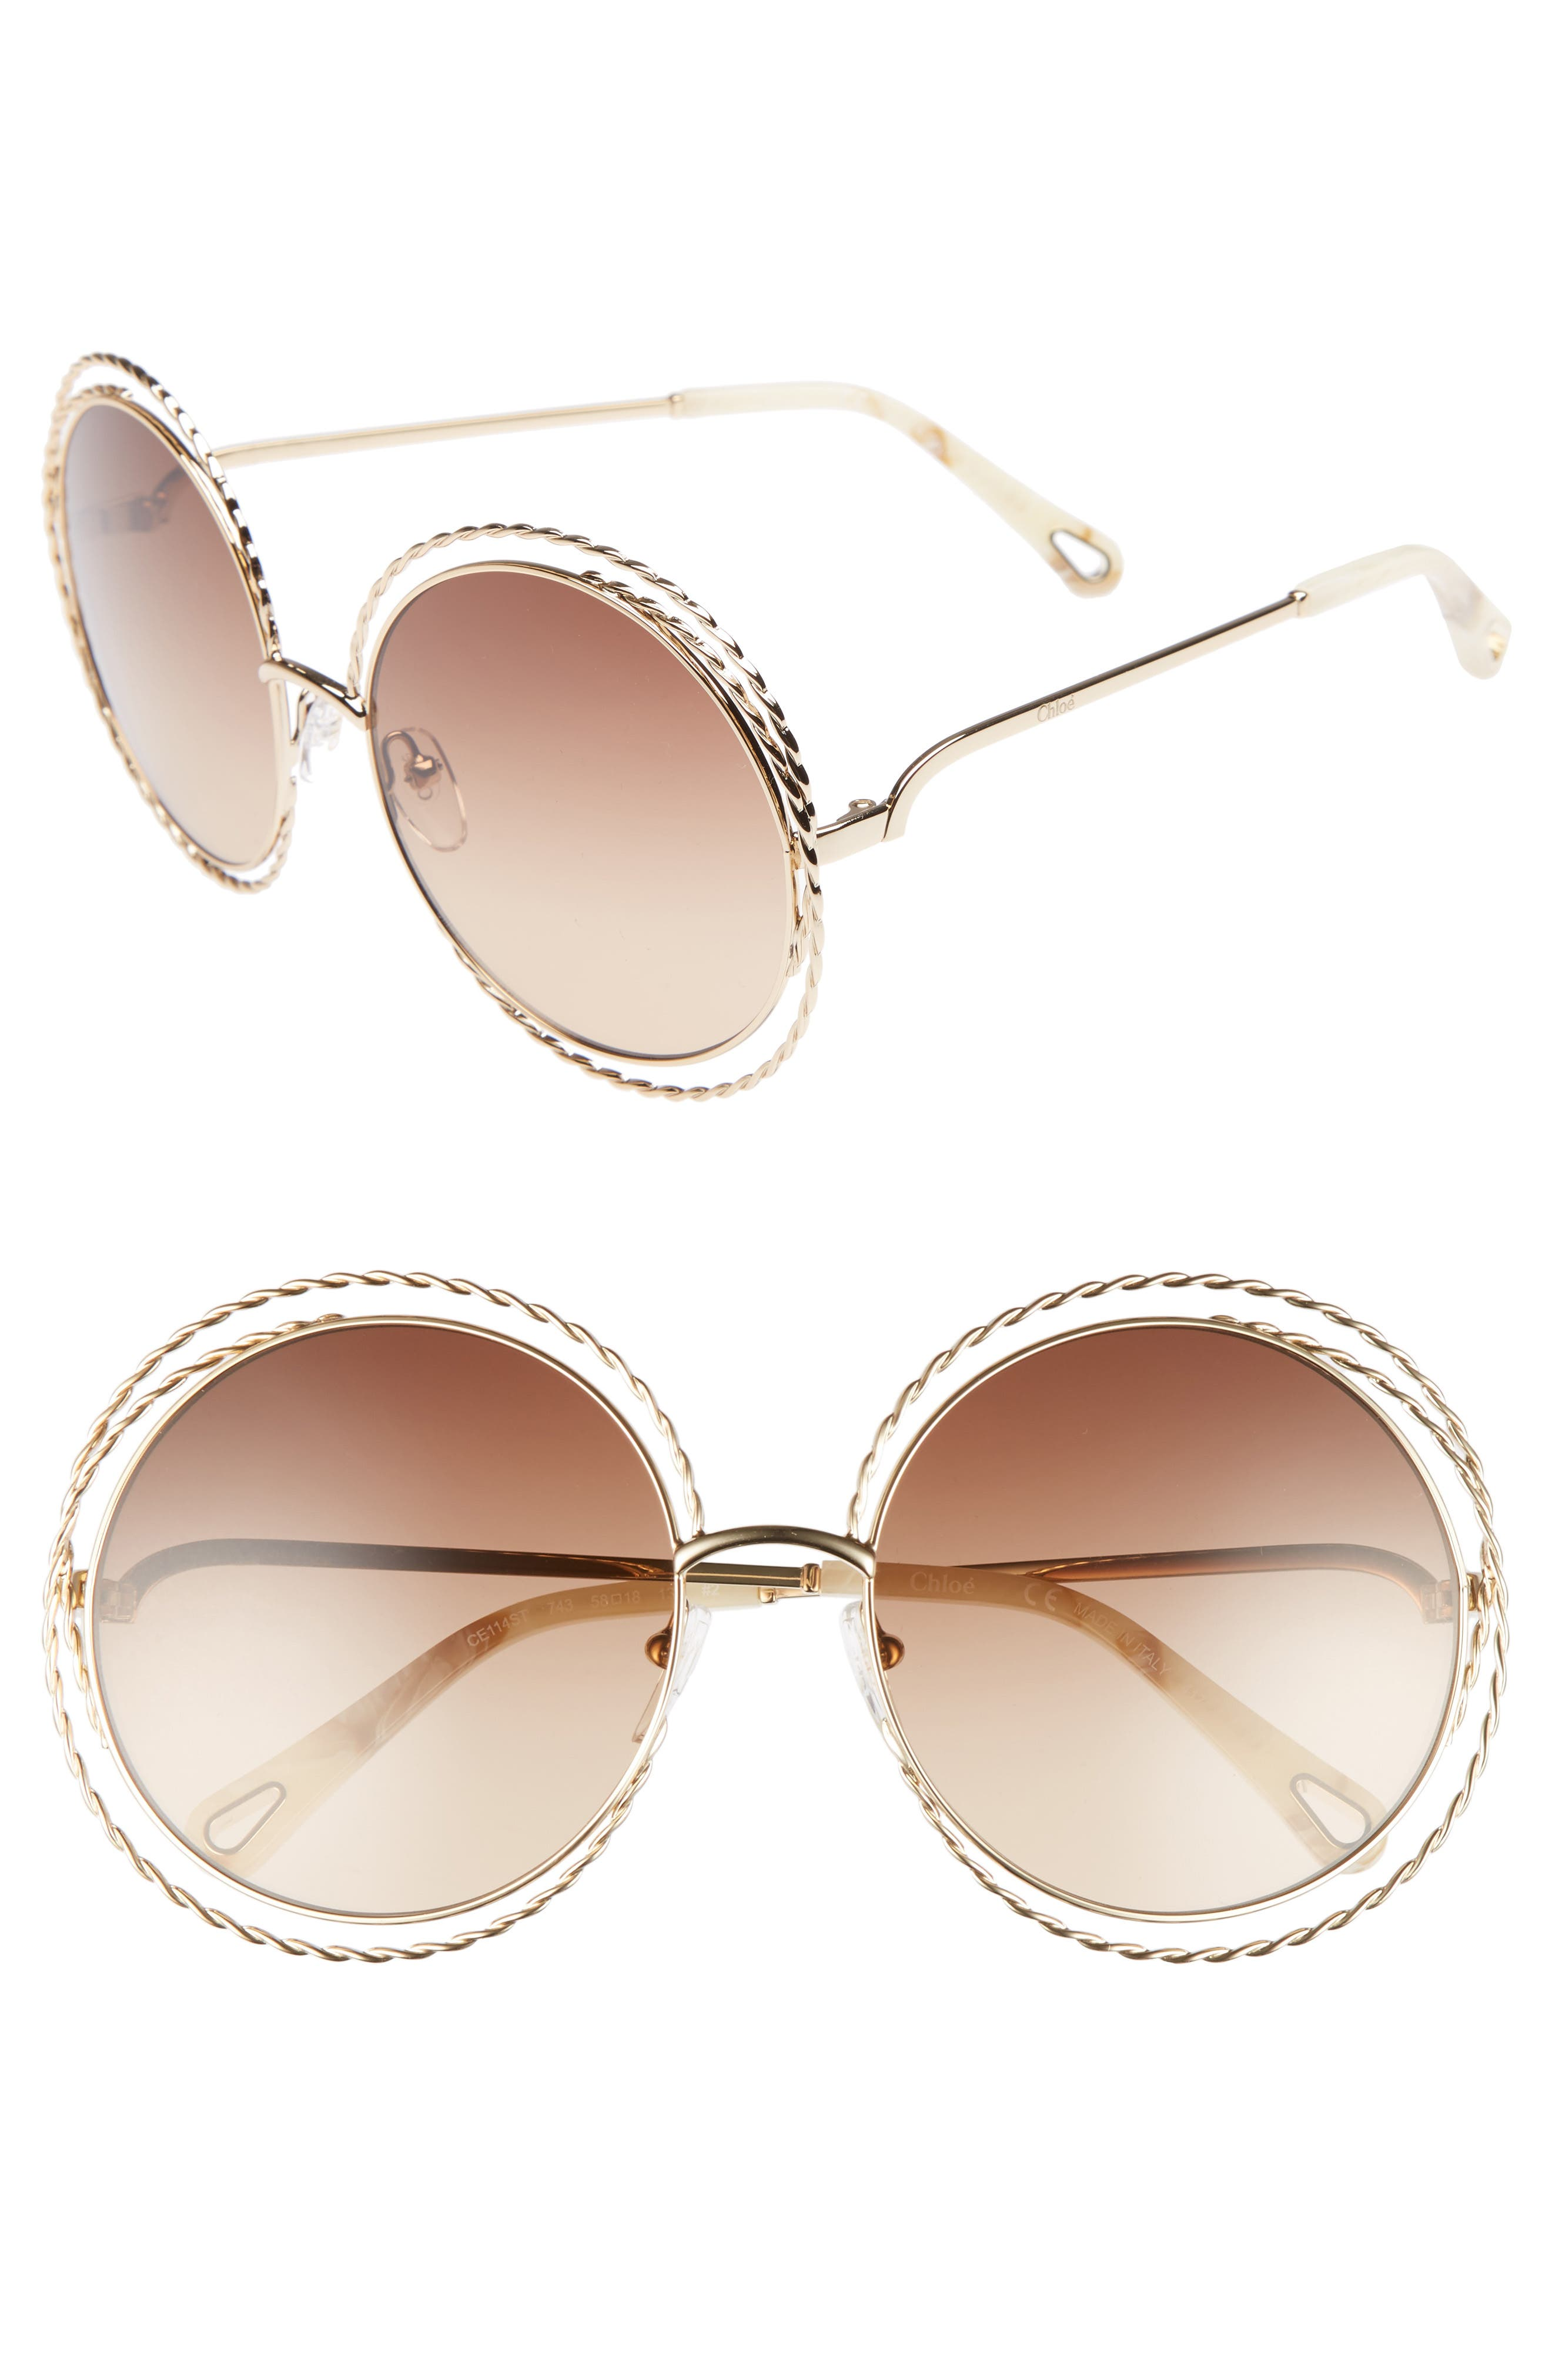 CHLOÉ Carlina Torsade 58mm Round Sunglasses, Main, color, GOLD/ BROWN